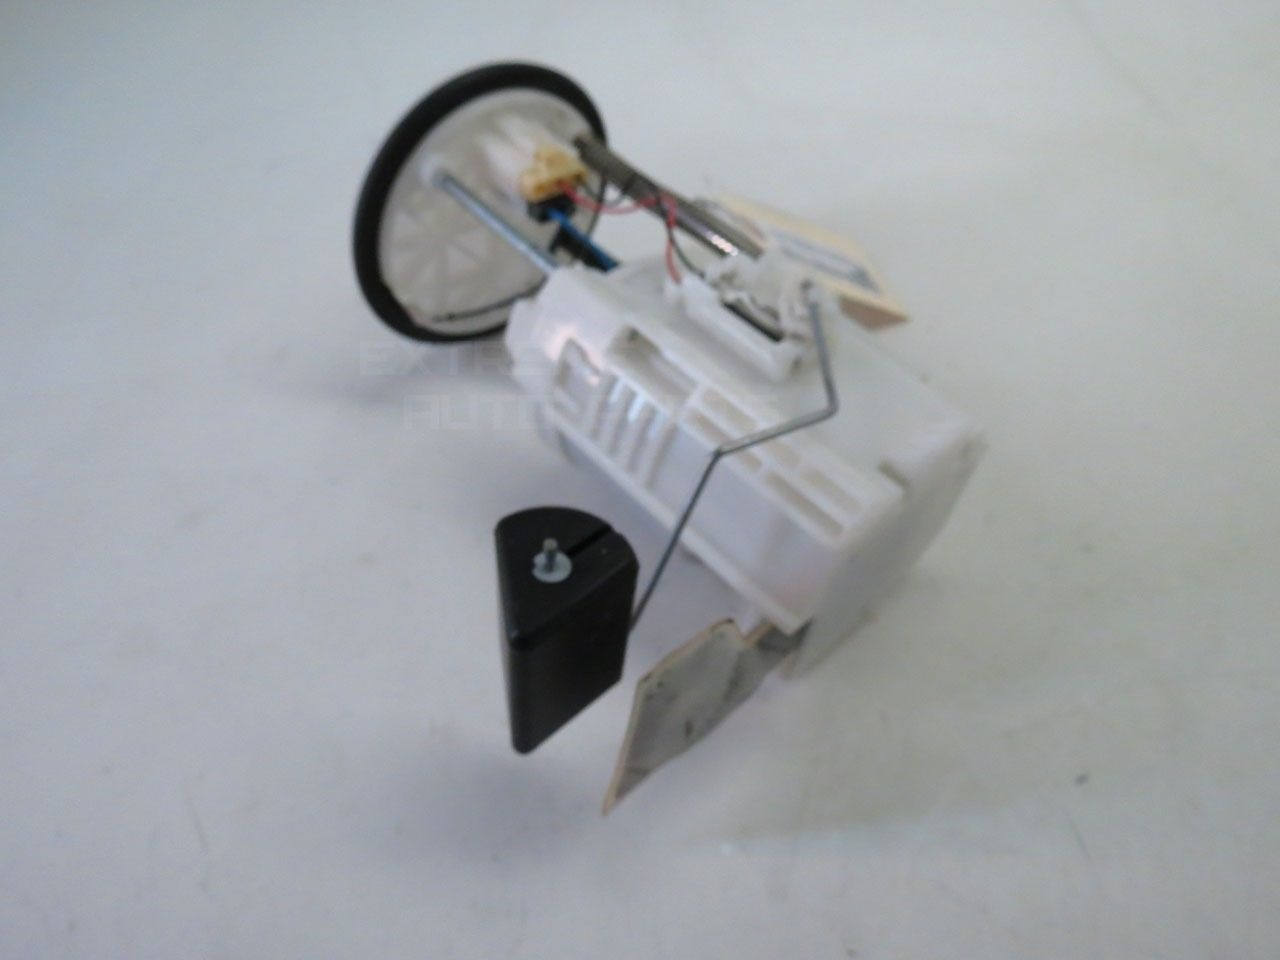 ... Toyota Camry 07 08 09 10 11 Fuel Filter Gas Pump, 4 Cylinder 77024-